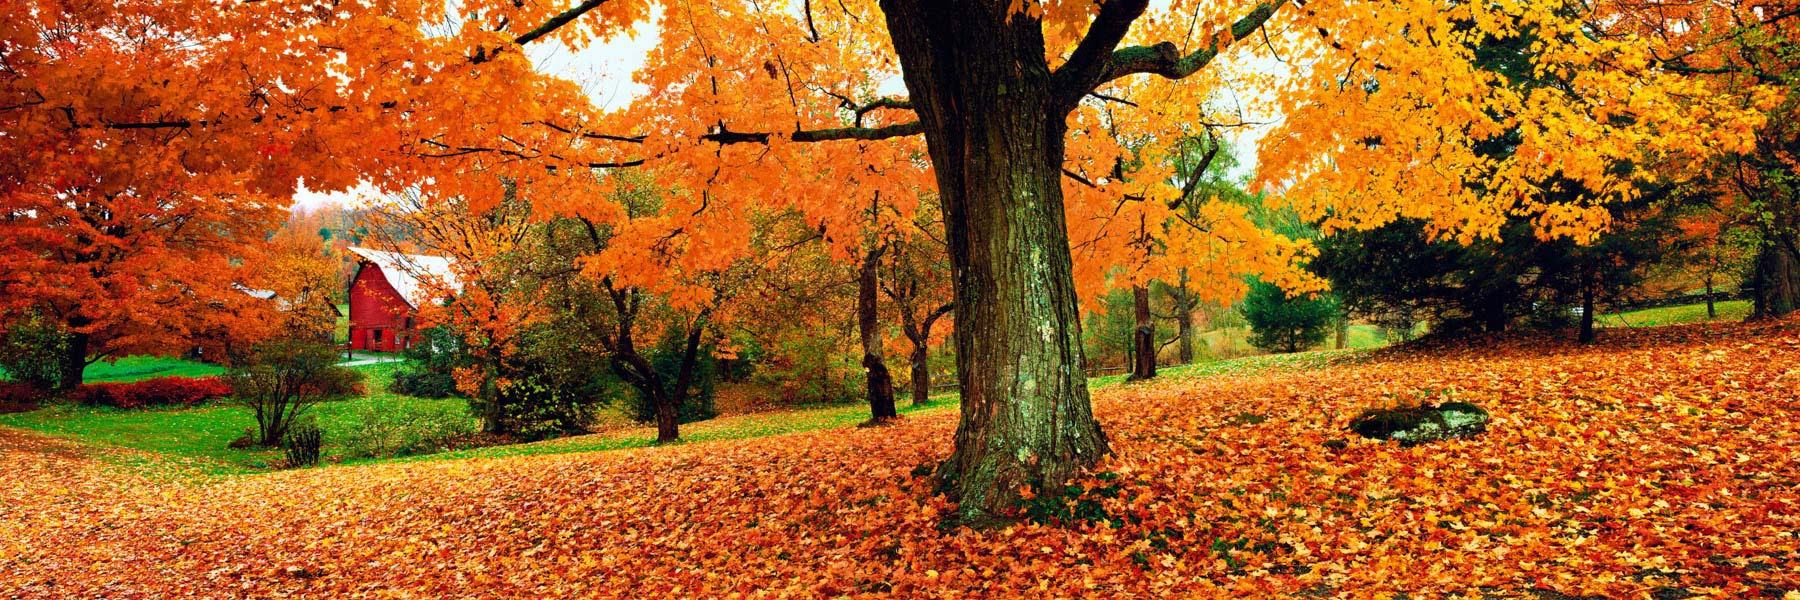 Autumn leaves, forming a rich red and gold carpet beneath the trees in Vermont, USA.